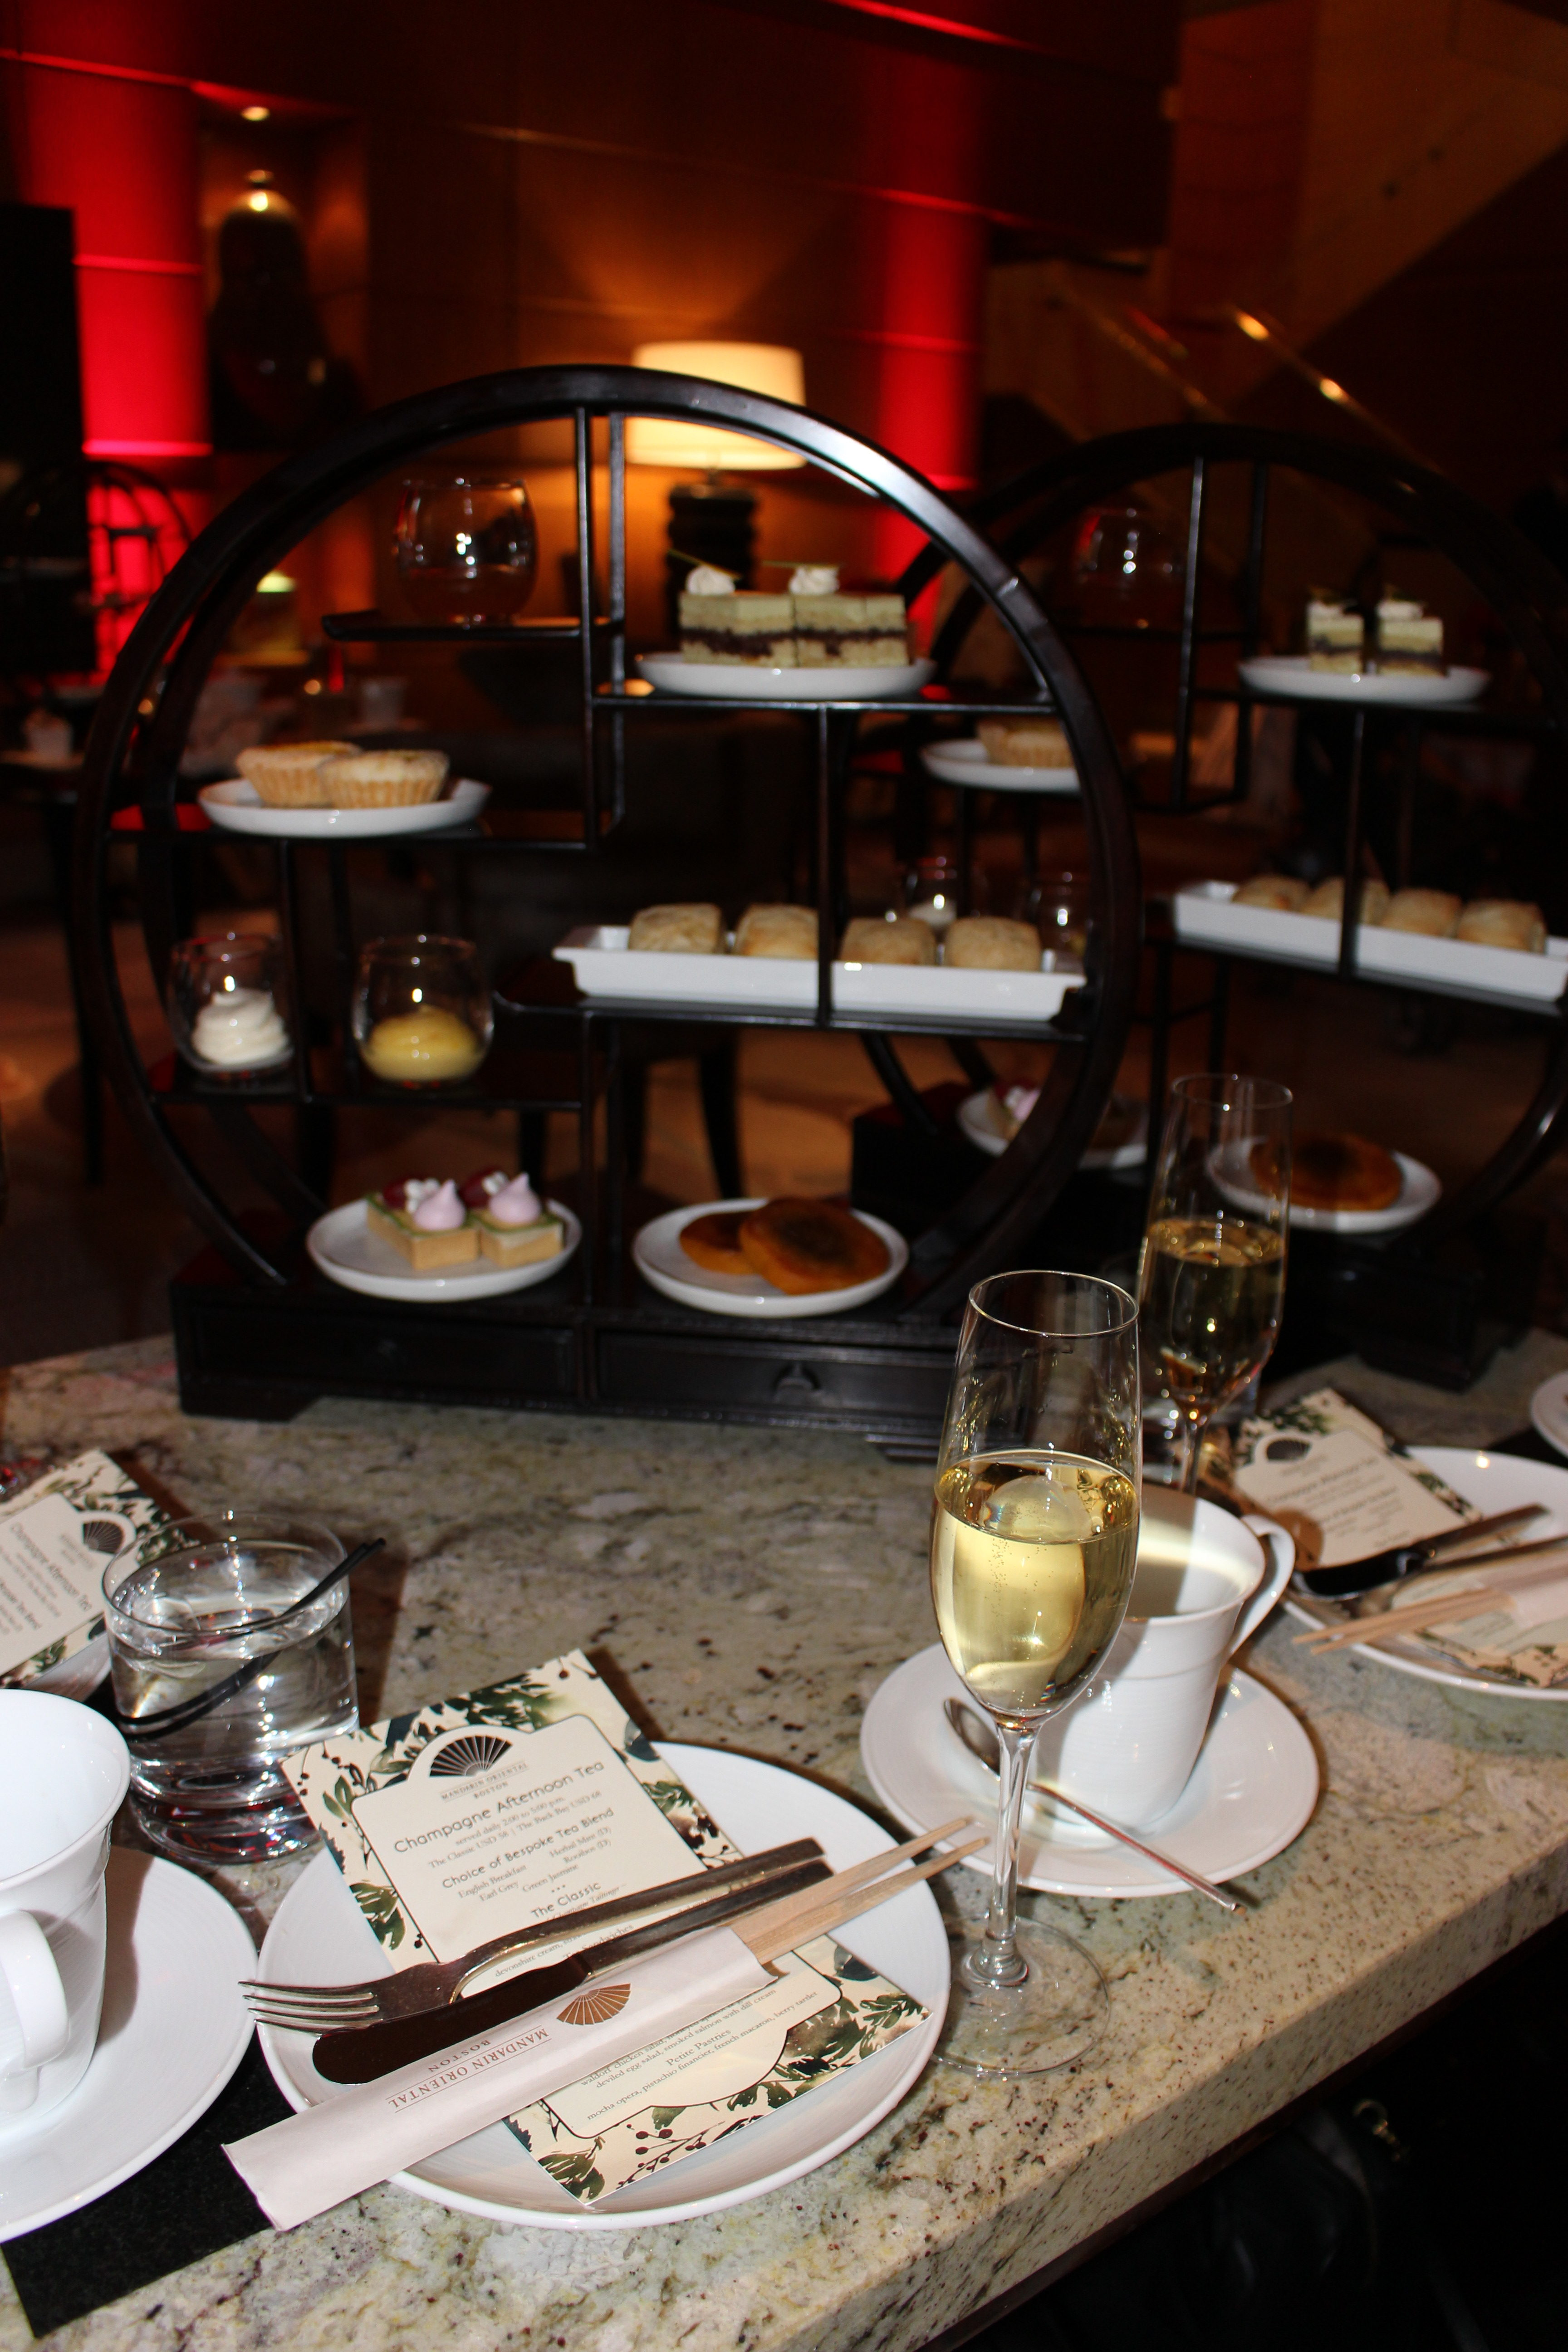 Boston blogger Lindsay Shores at Champagne Afternoon Tea in the Mandarin Oriental Hotel